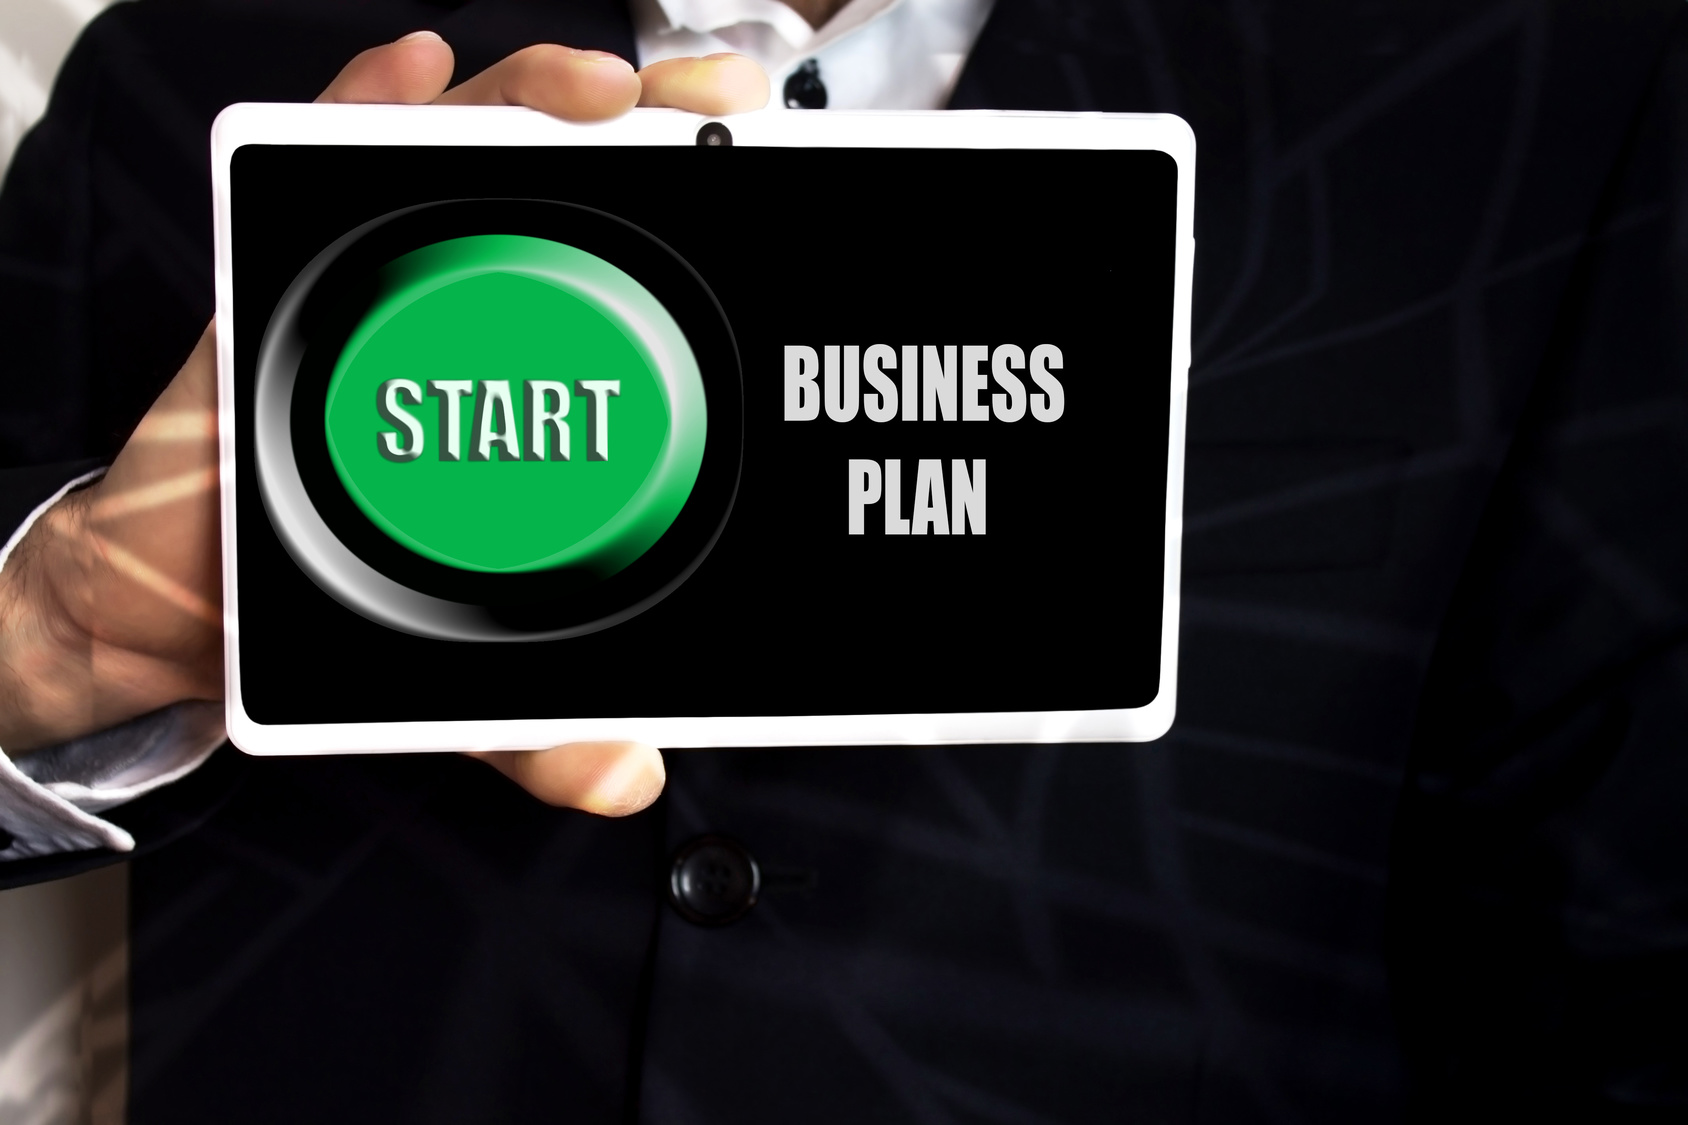 Business plan to get new customers